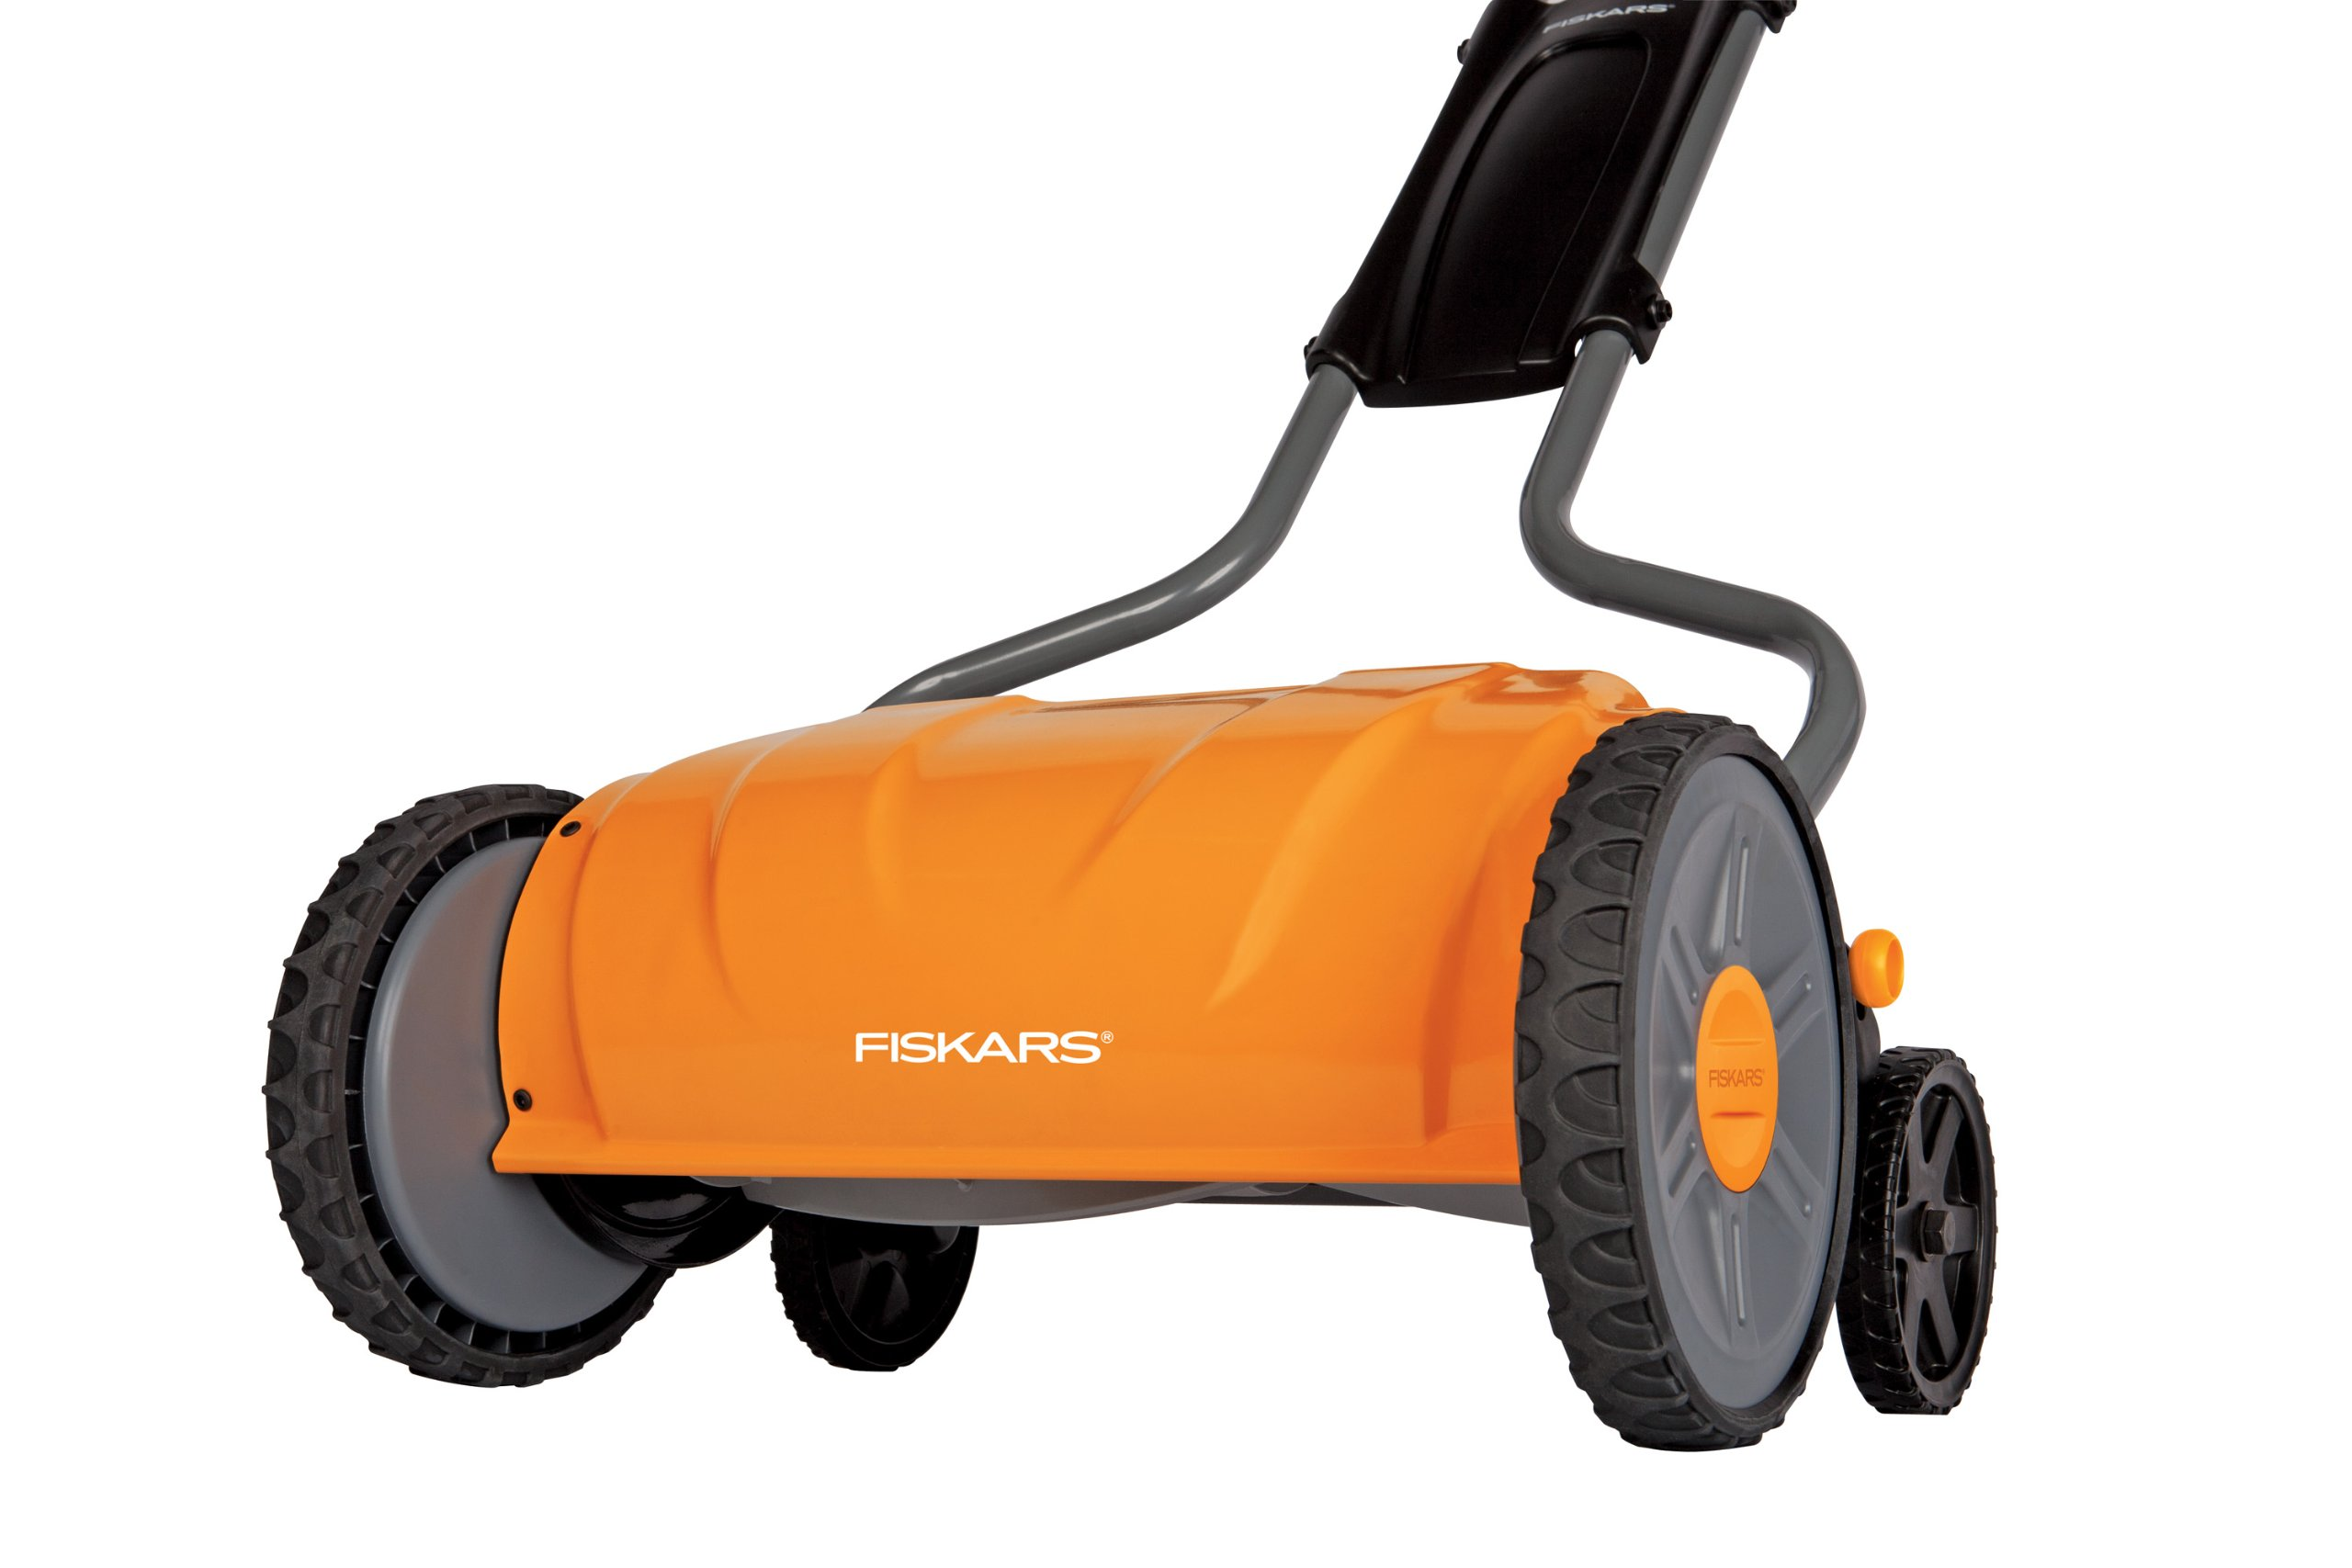 Fiskars 17 inch Staysharp Push Reel Lawn Mower (6208) (Pack of 2) 2 The smart design of our eco-friendly reel mower offers a cleaner cut without the hassles of gasoline, oil, battery charging, electrical cords or loud engine noise A combination of advanced technologies make the StaySharp Reel Mower 30 percent easier to push than other reel mowers Patent-pending InertiaDrive Reel delivers 50 percent more cutting power to blast through twigs, weeds and tough spots that would jam other reel mowers